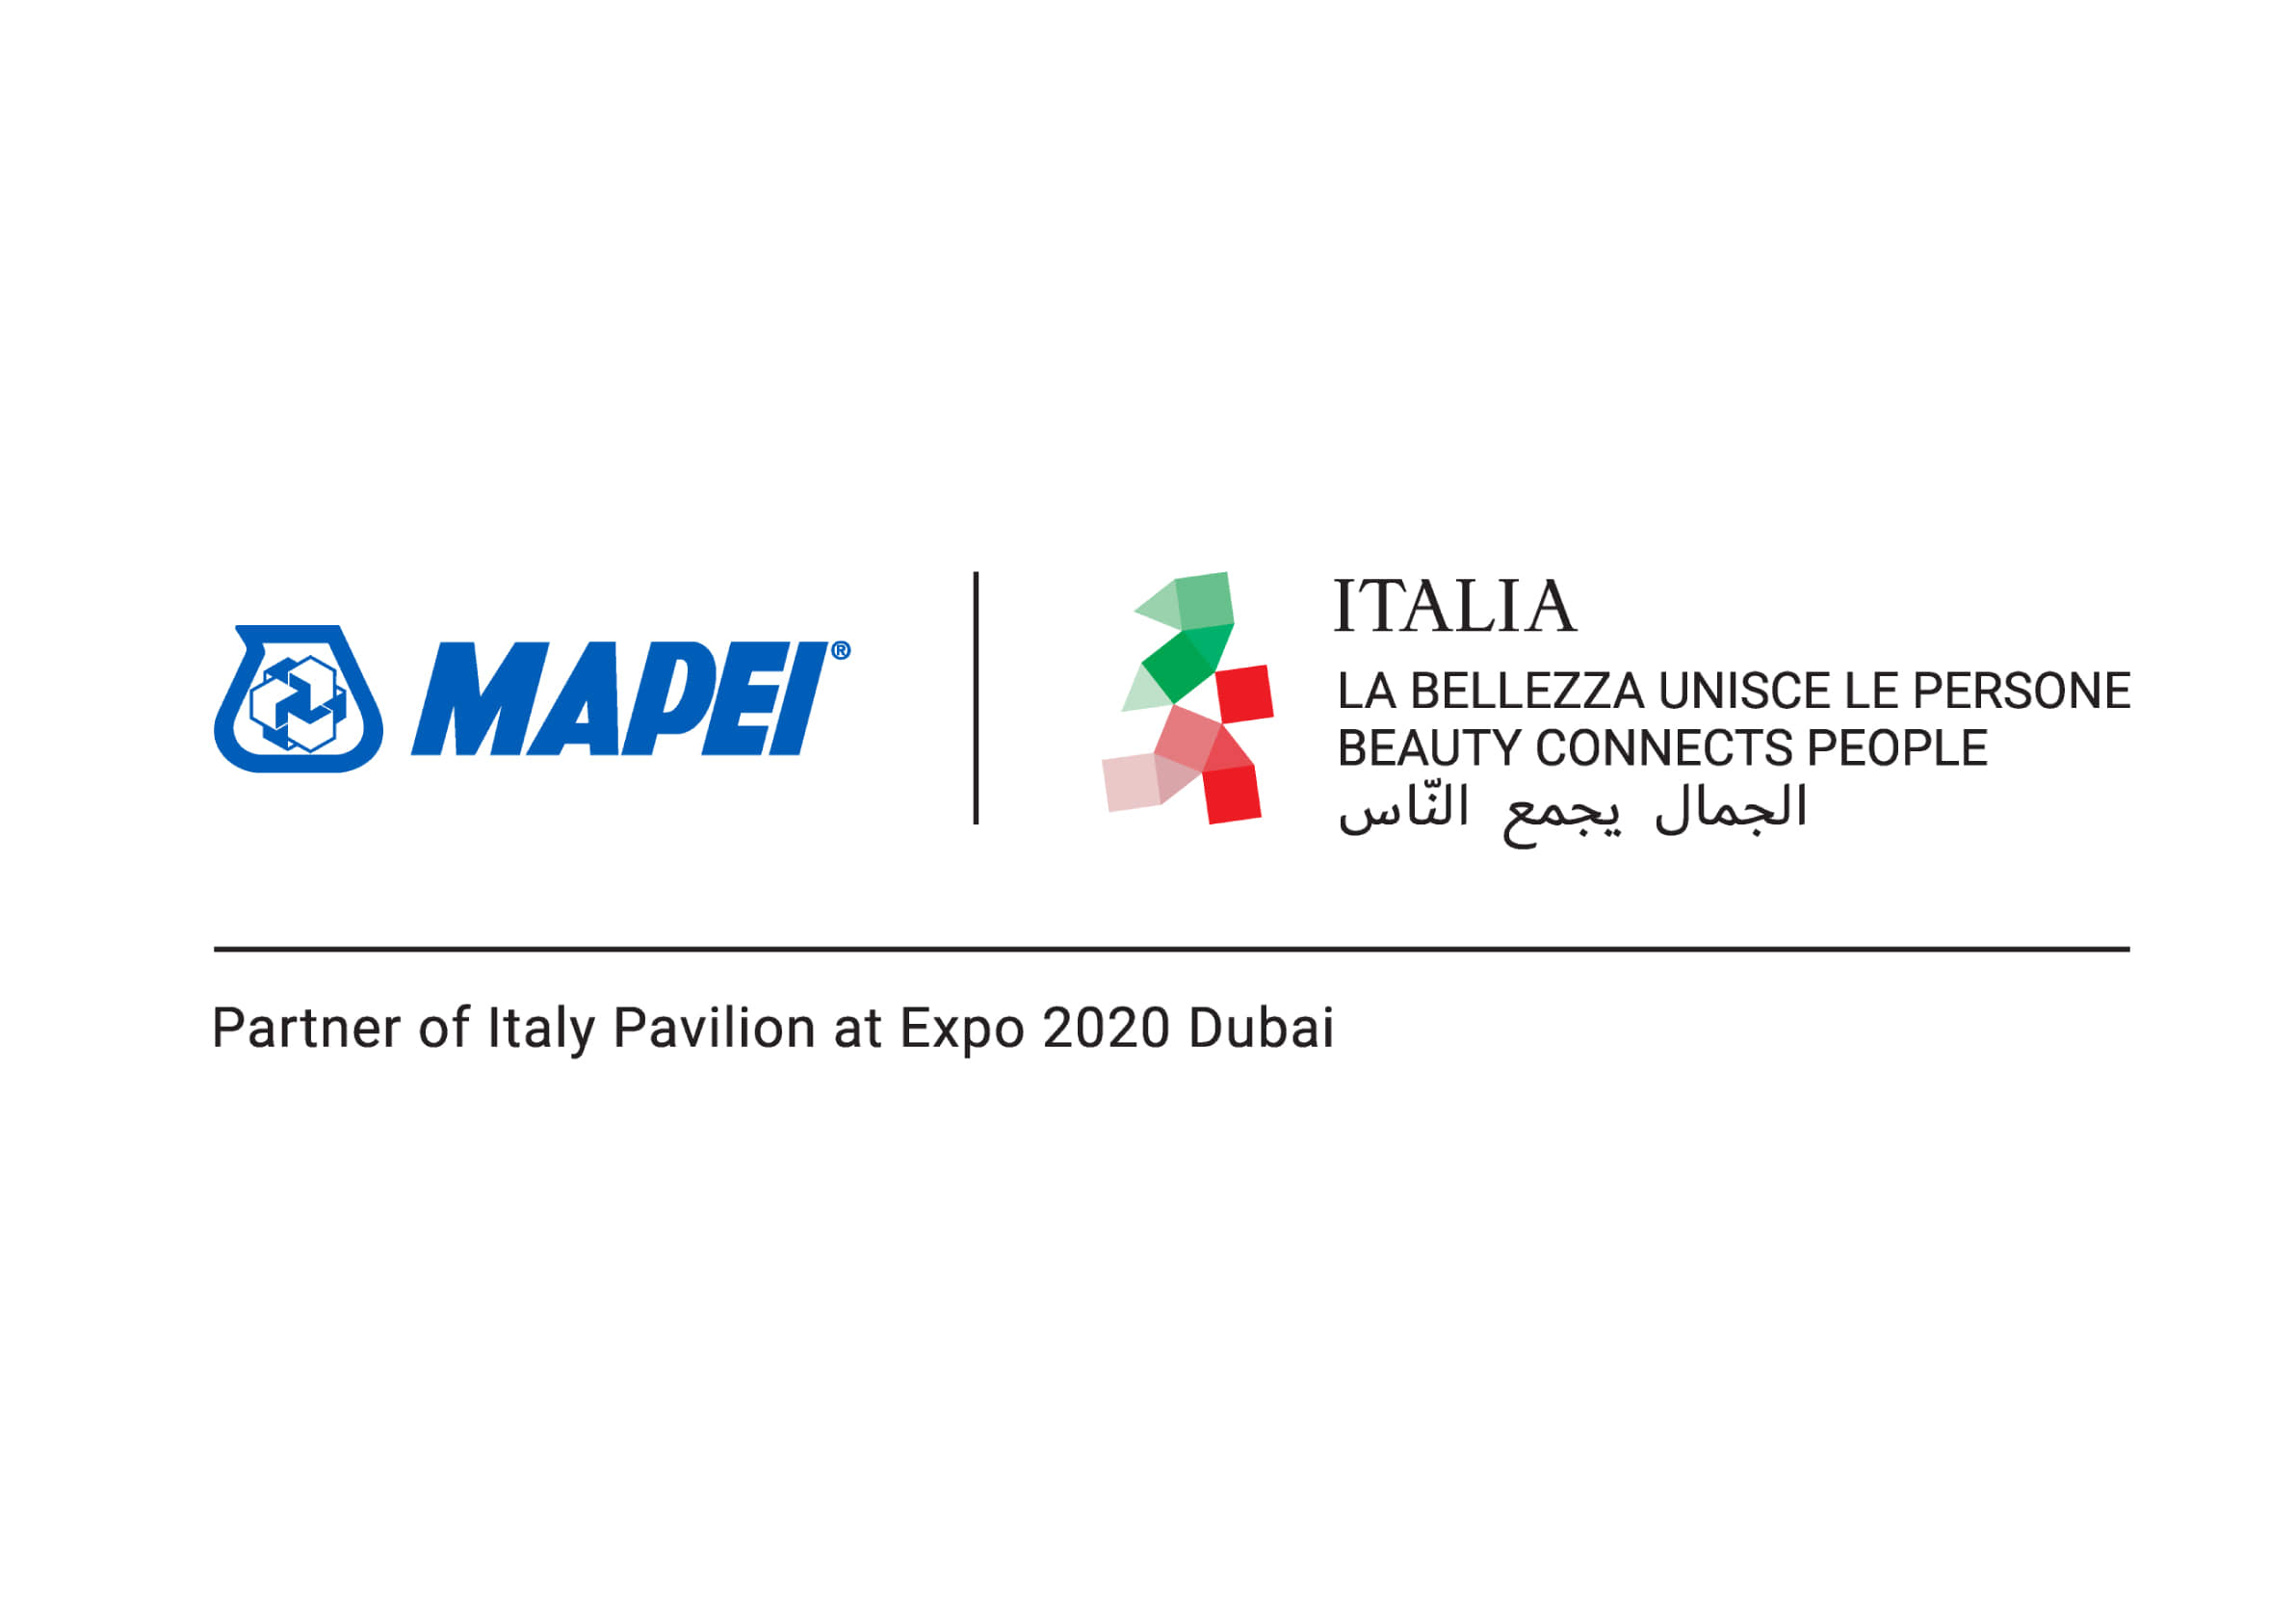 Mapei, Partner of Italy Pavilion at EXPO 2020